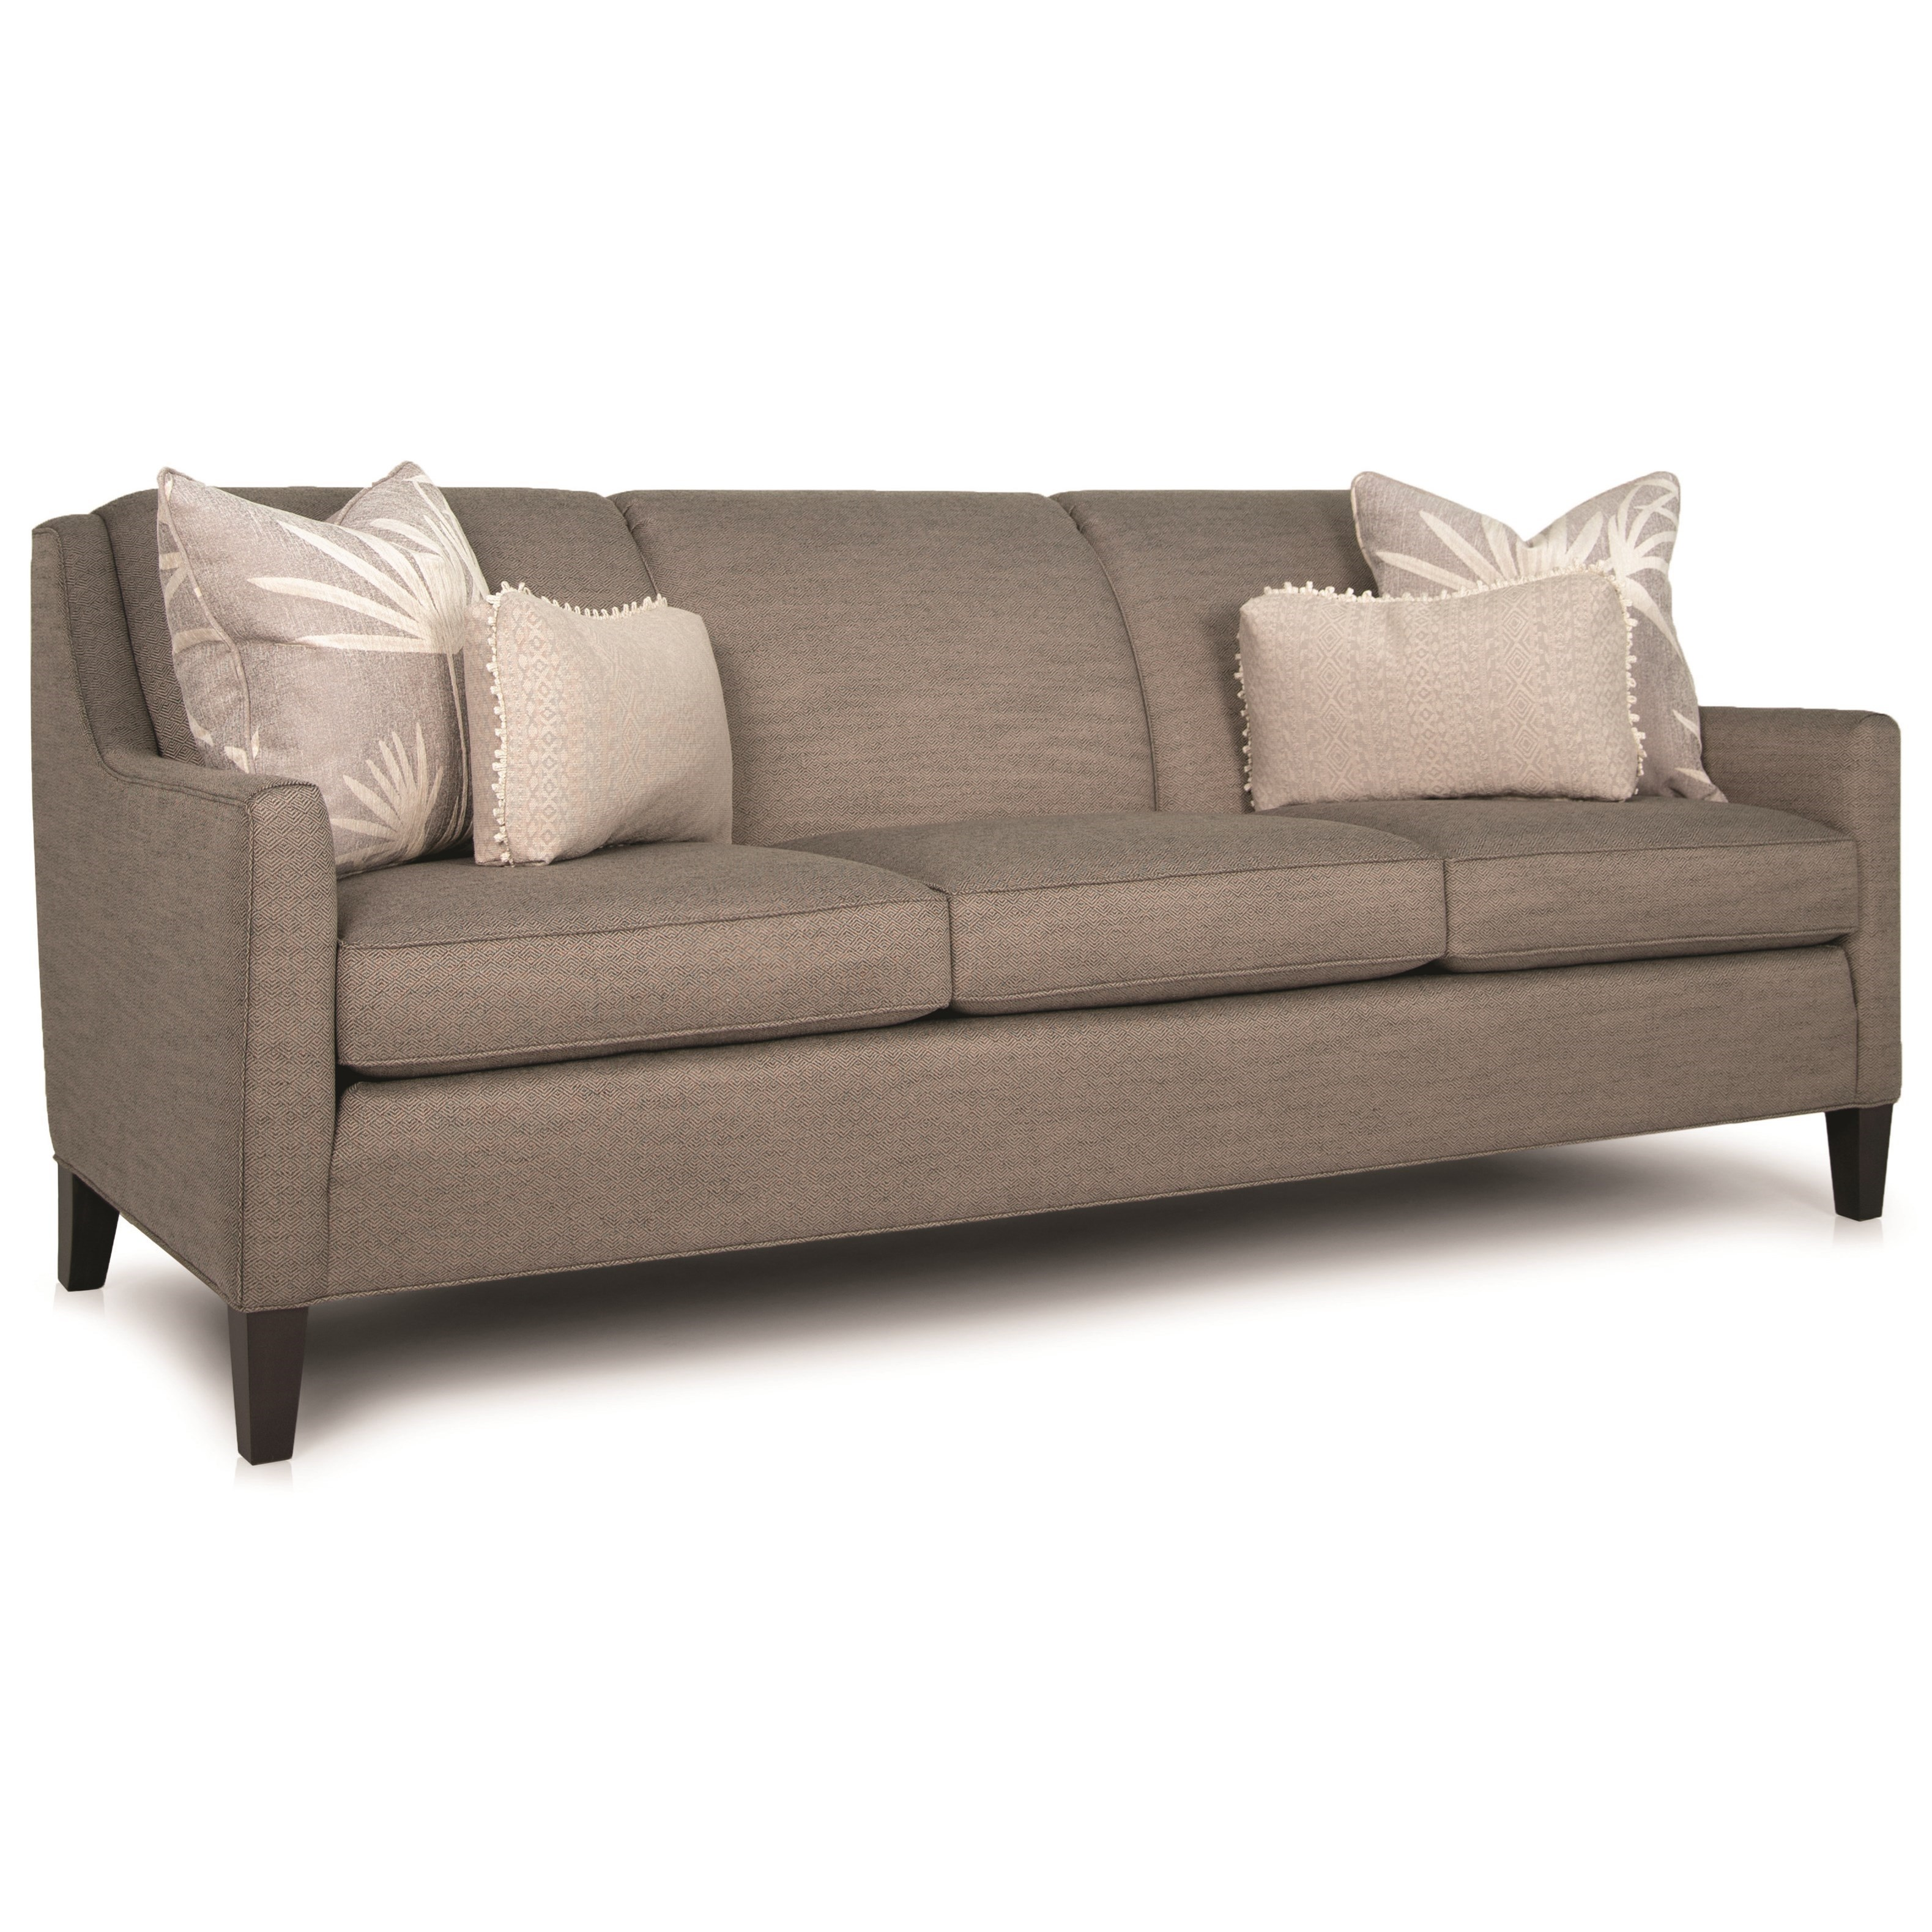 "248 74"" Sofa by Smith Brothers at Miller Home"